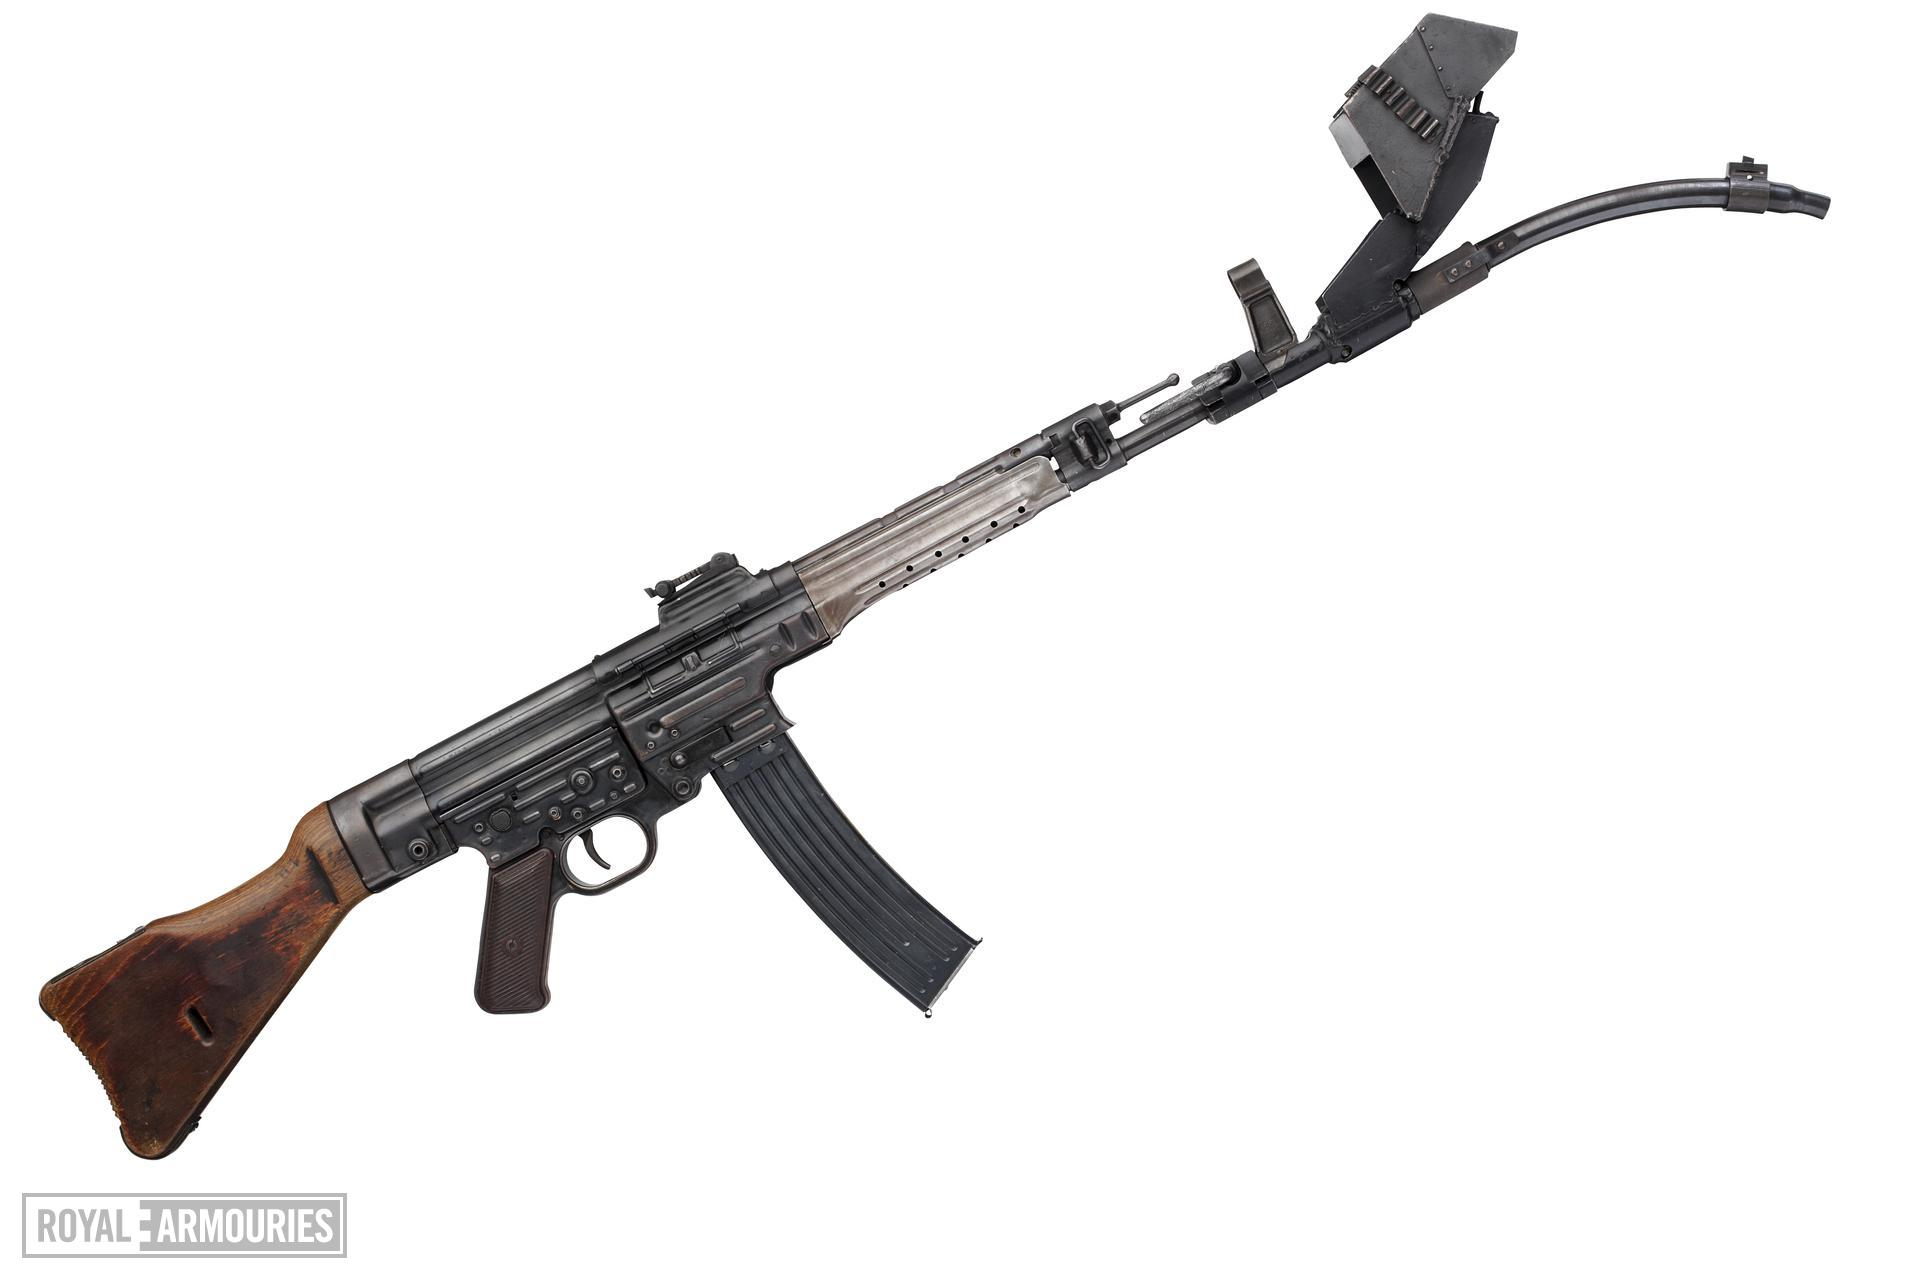 Centrefire automatic rifle - StG44 With Krummlauf Vorsatz J curved barrel attachment for infantry use.